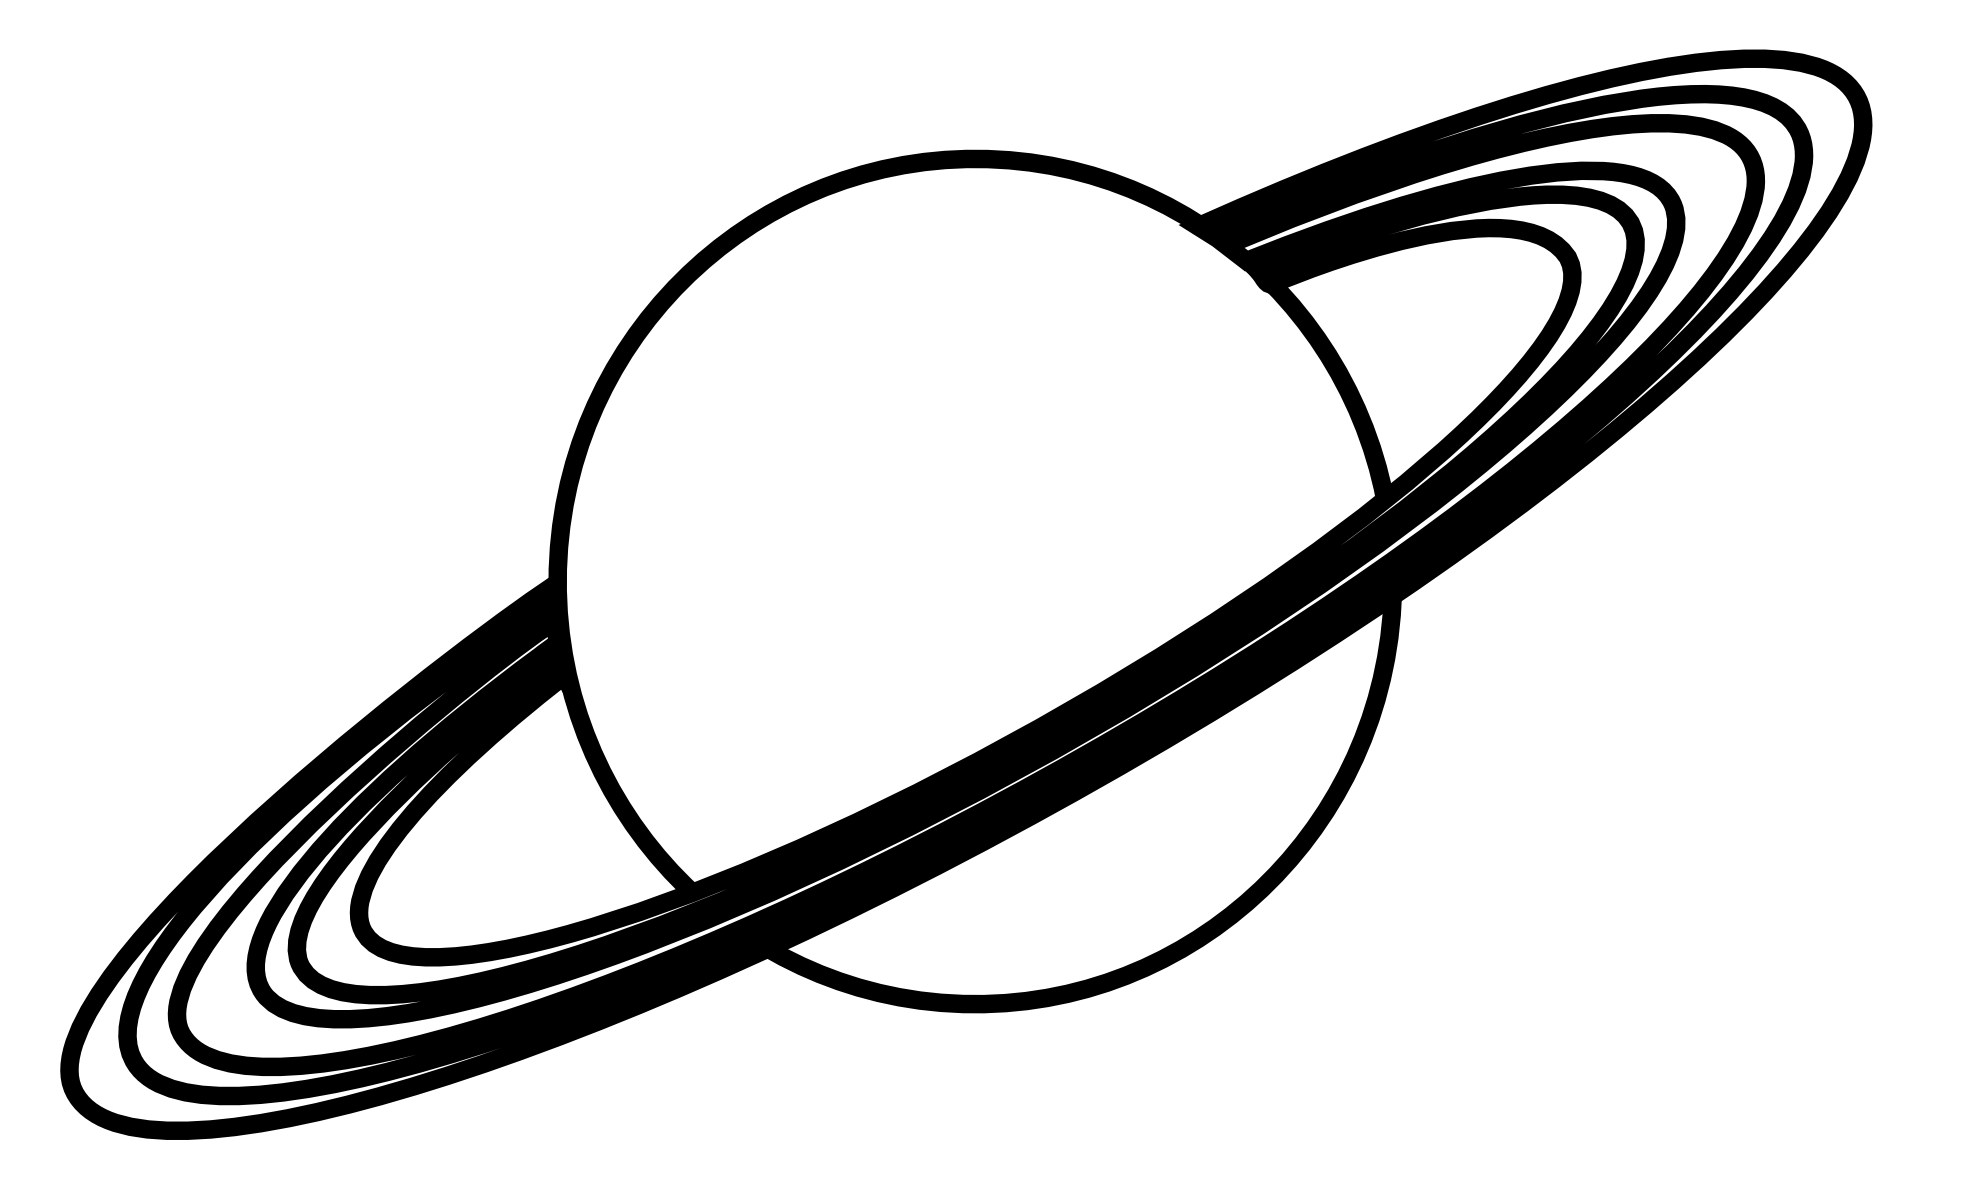 Planet Clipart Black And White.